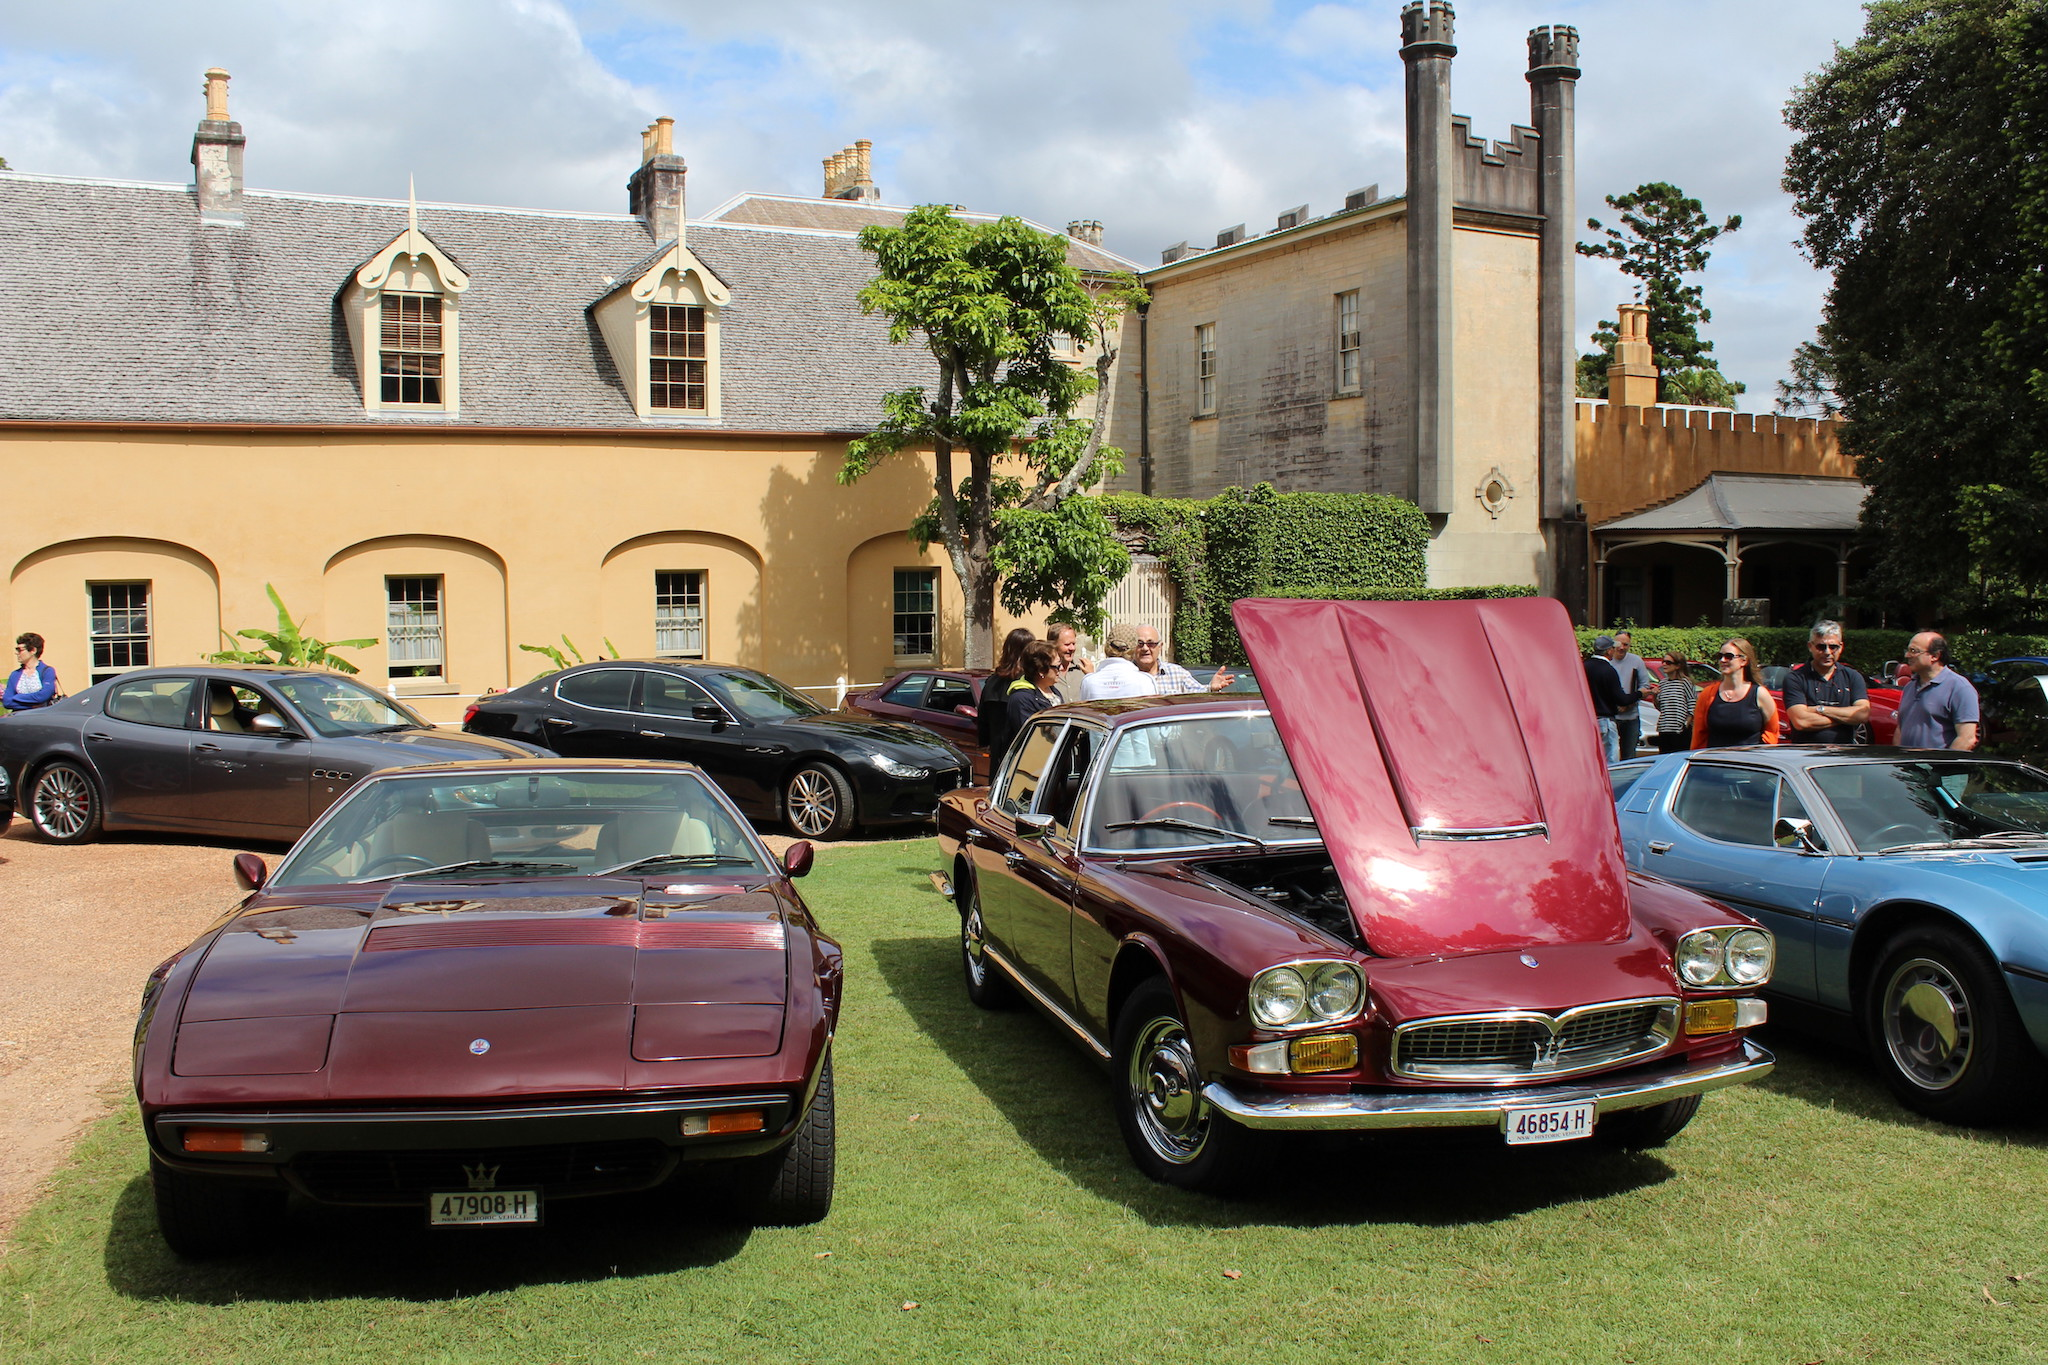 Annual Picnic and Concours d'Elegance